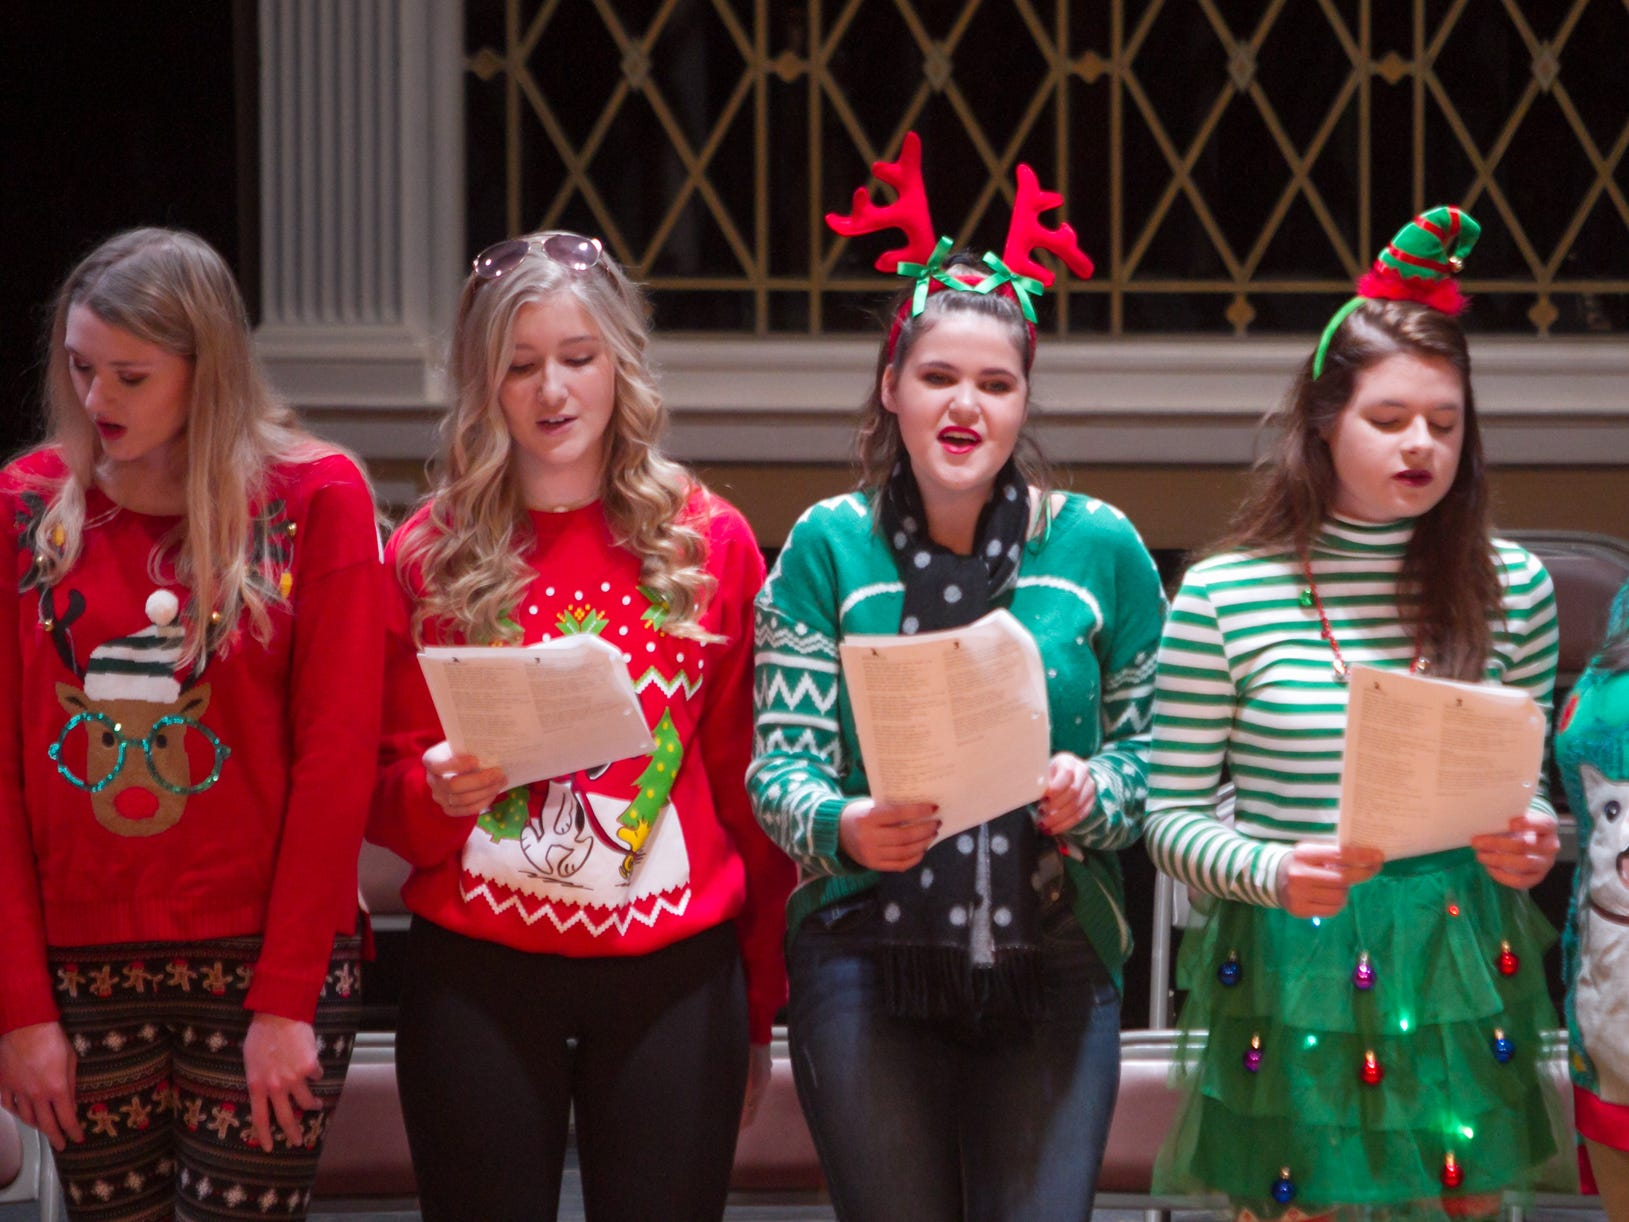 Members of Hartland High School's choir sing at the Hartland Music Hall for Polar Express Day Saturday, Dec. 8, 2018.